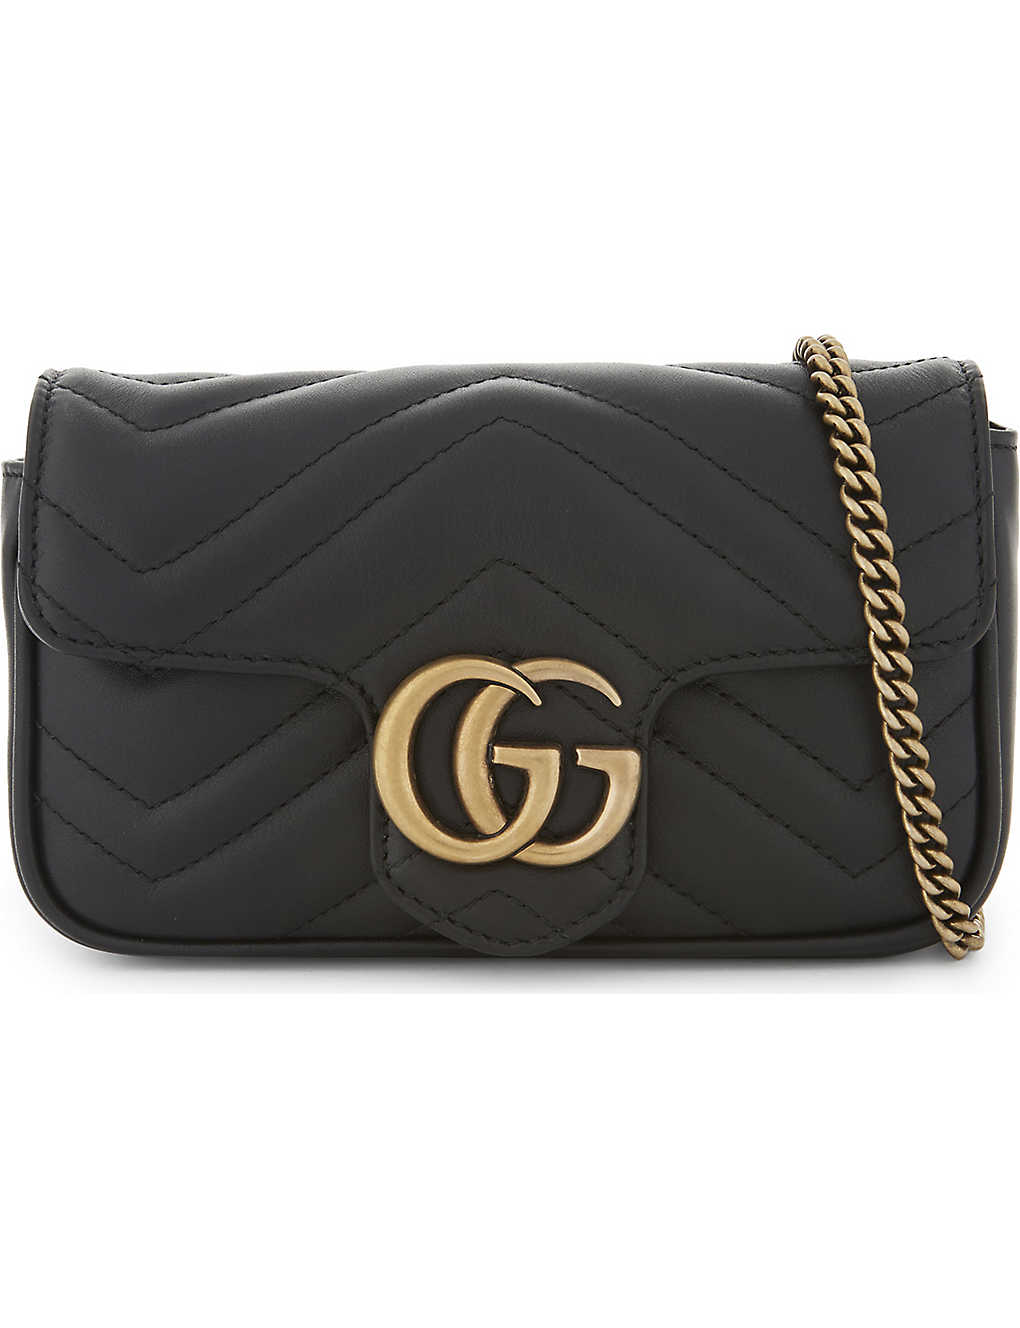 0c528b8af GUCCI - Marmont Super Mini leather shoulder bag | Selfridges.com